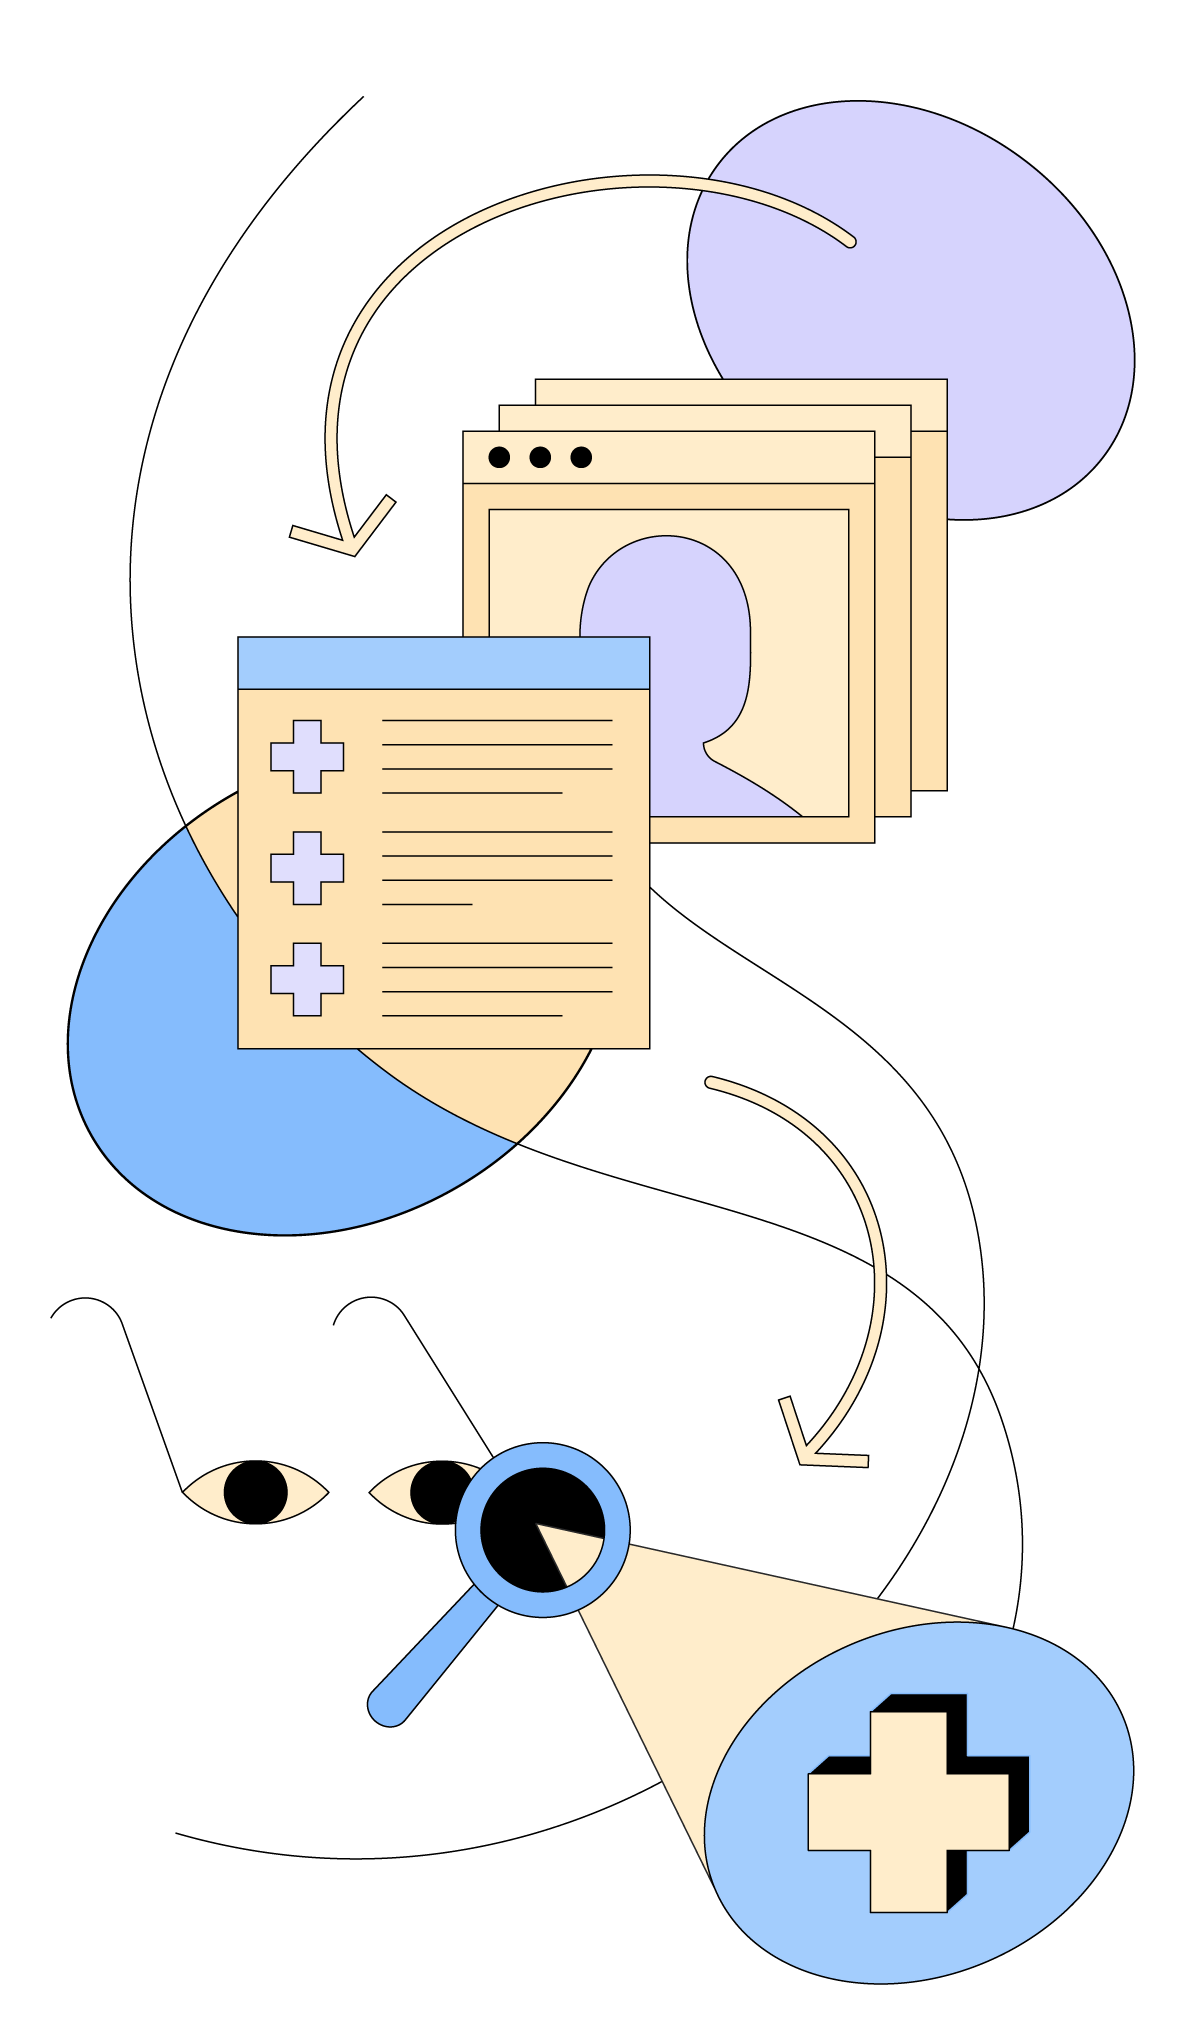 Abstract, cartoon graphic depicting an online database with user profiles, a checklist and a pair of glasses.